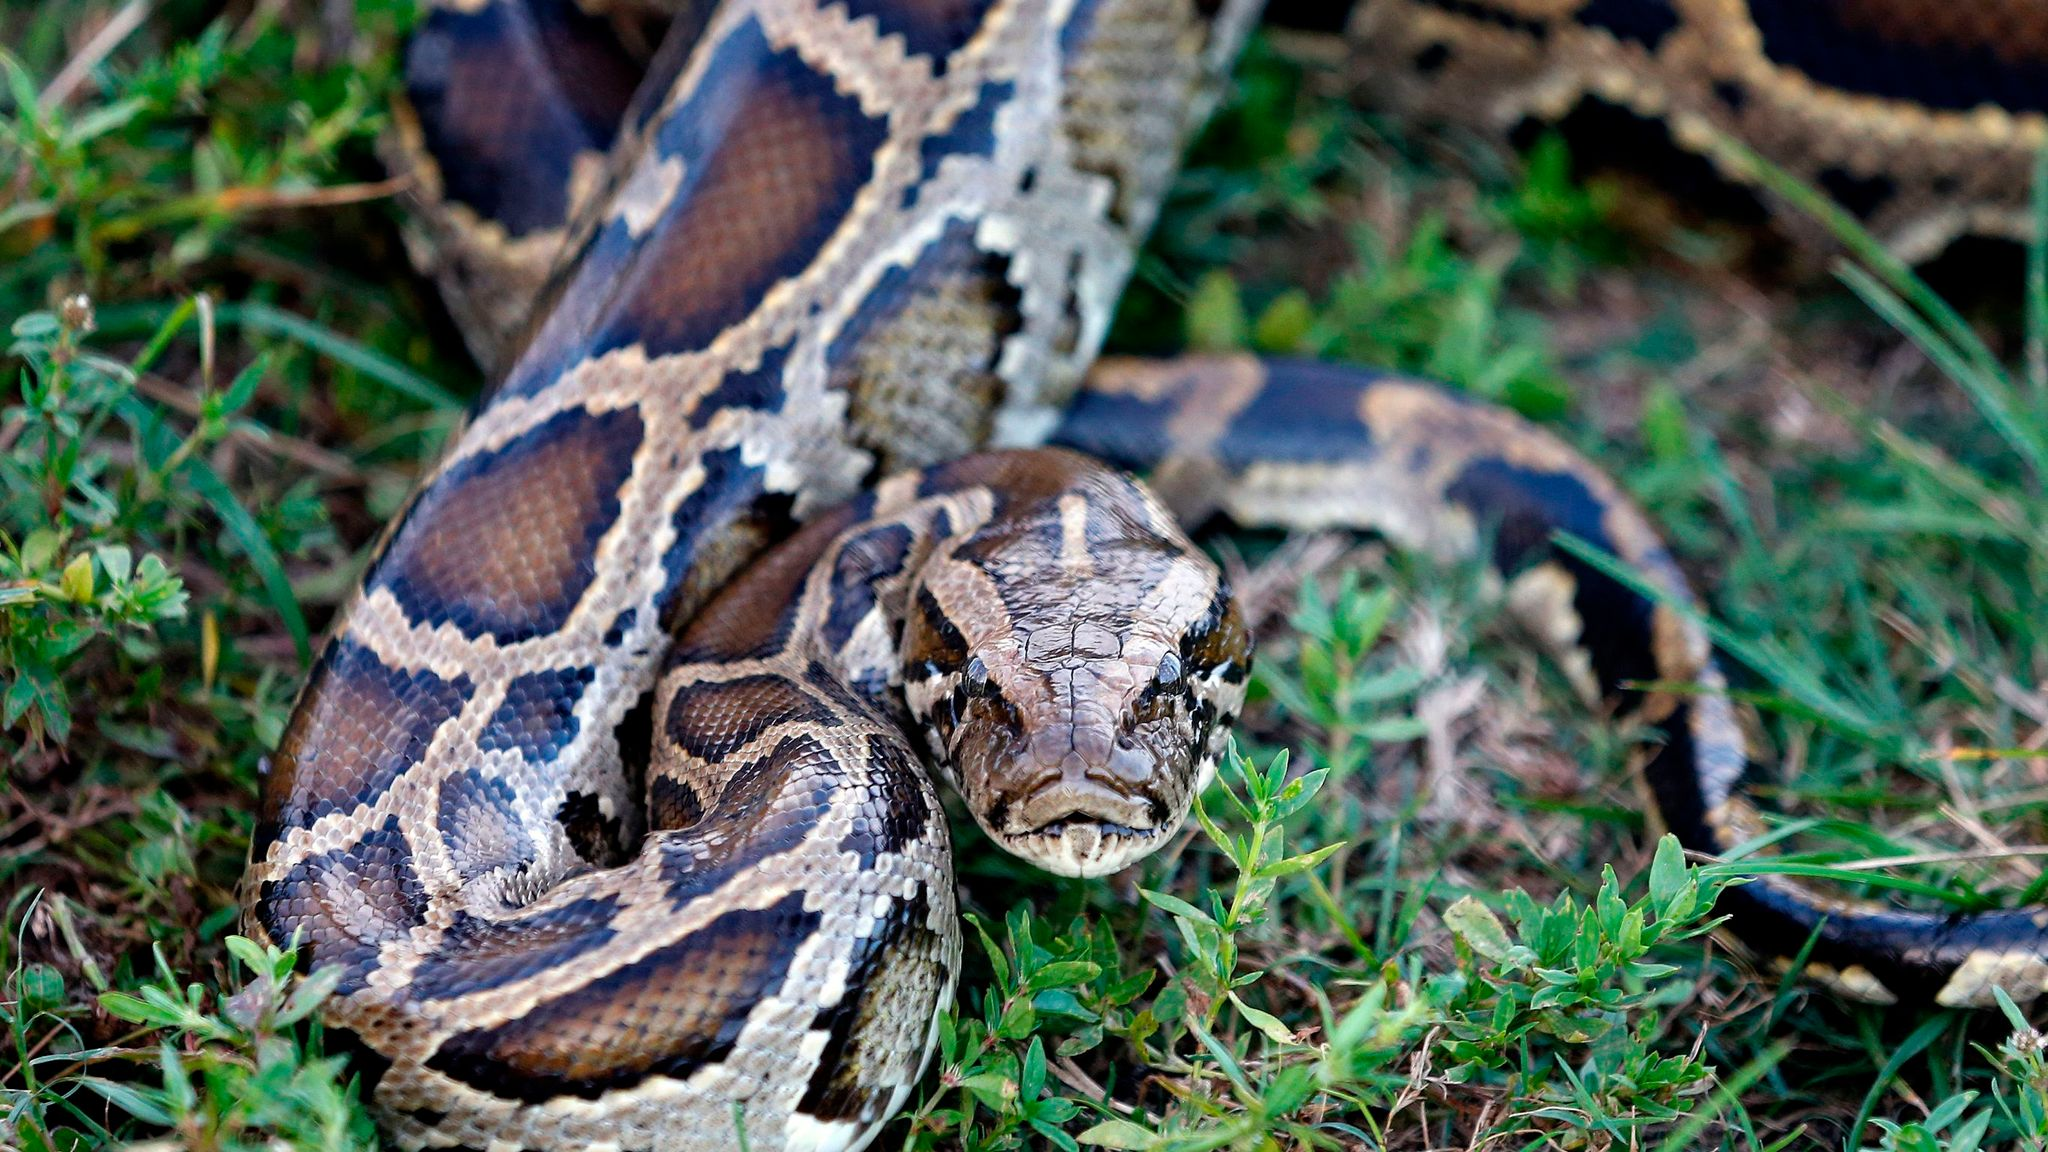 Snakes on the wane: Hunters catch thousands of pythons in Florida